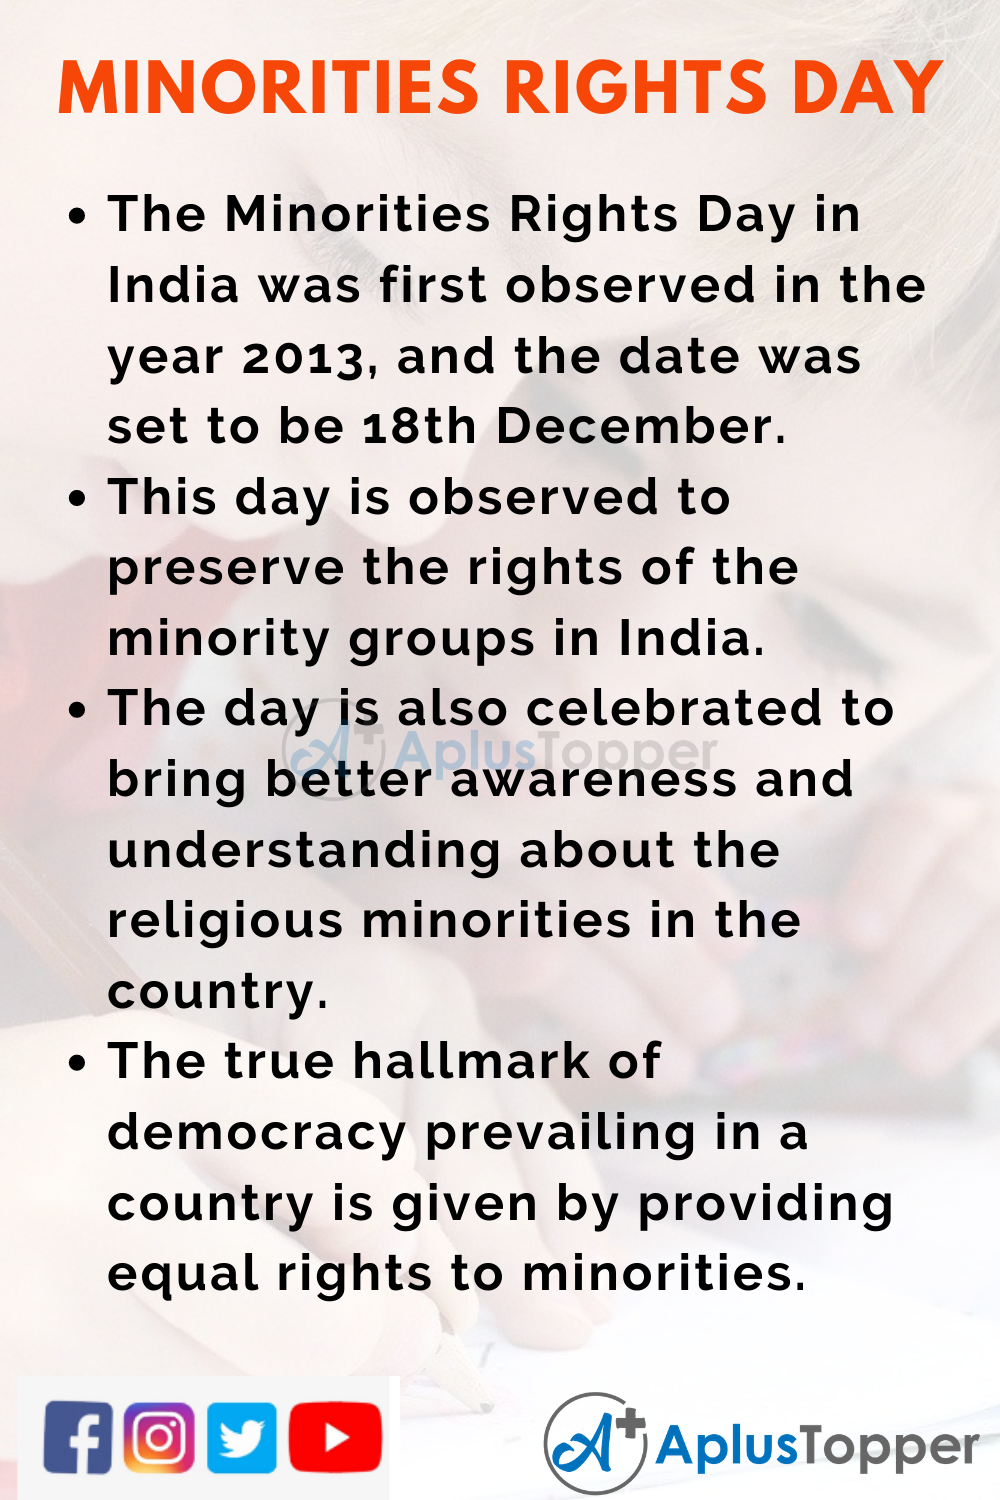 10 Lines on Minorities Rights Day in India for Kids